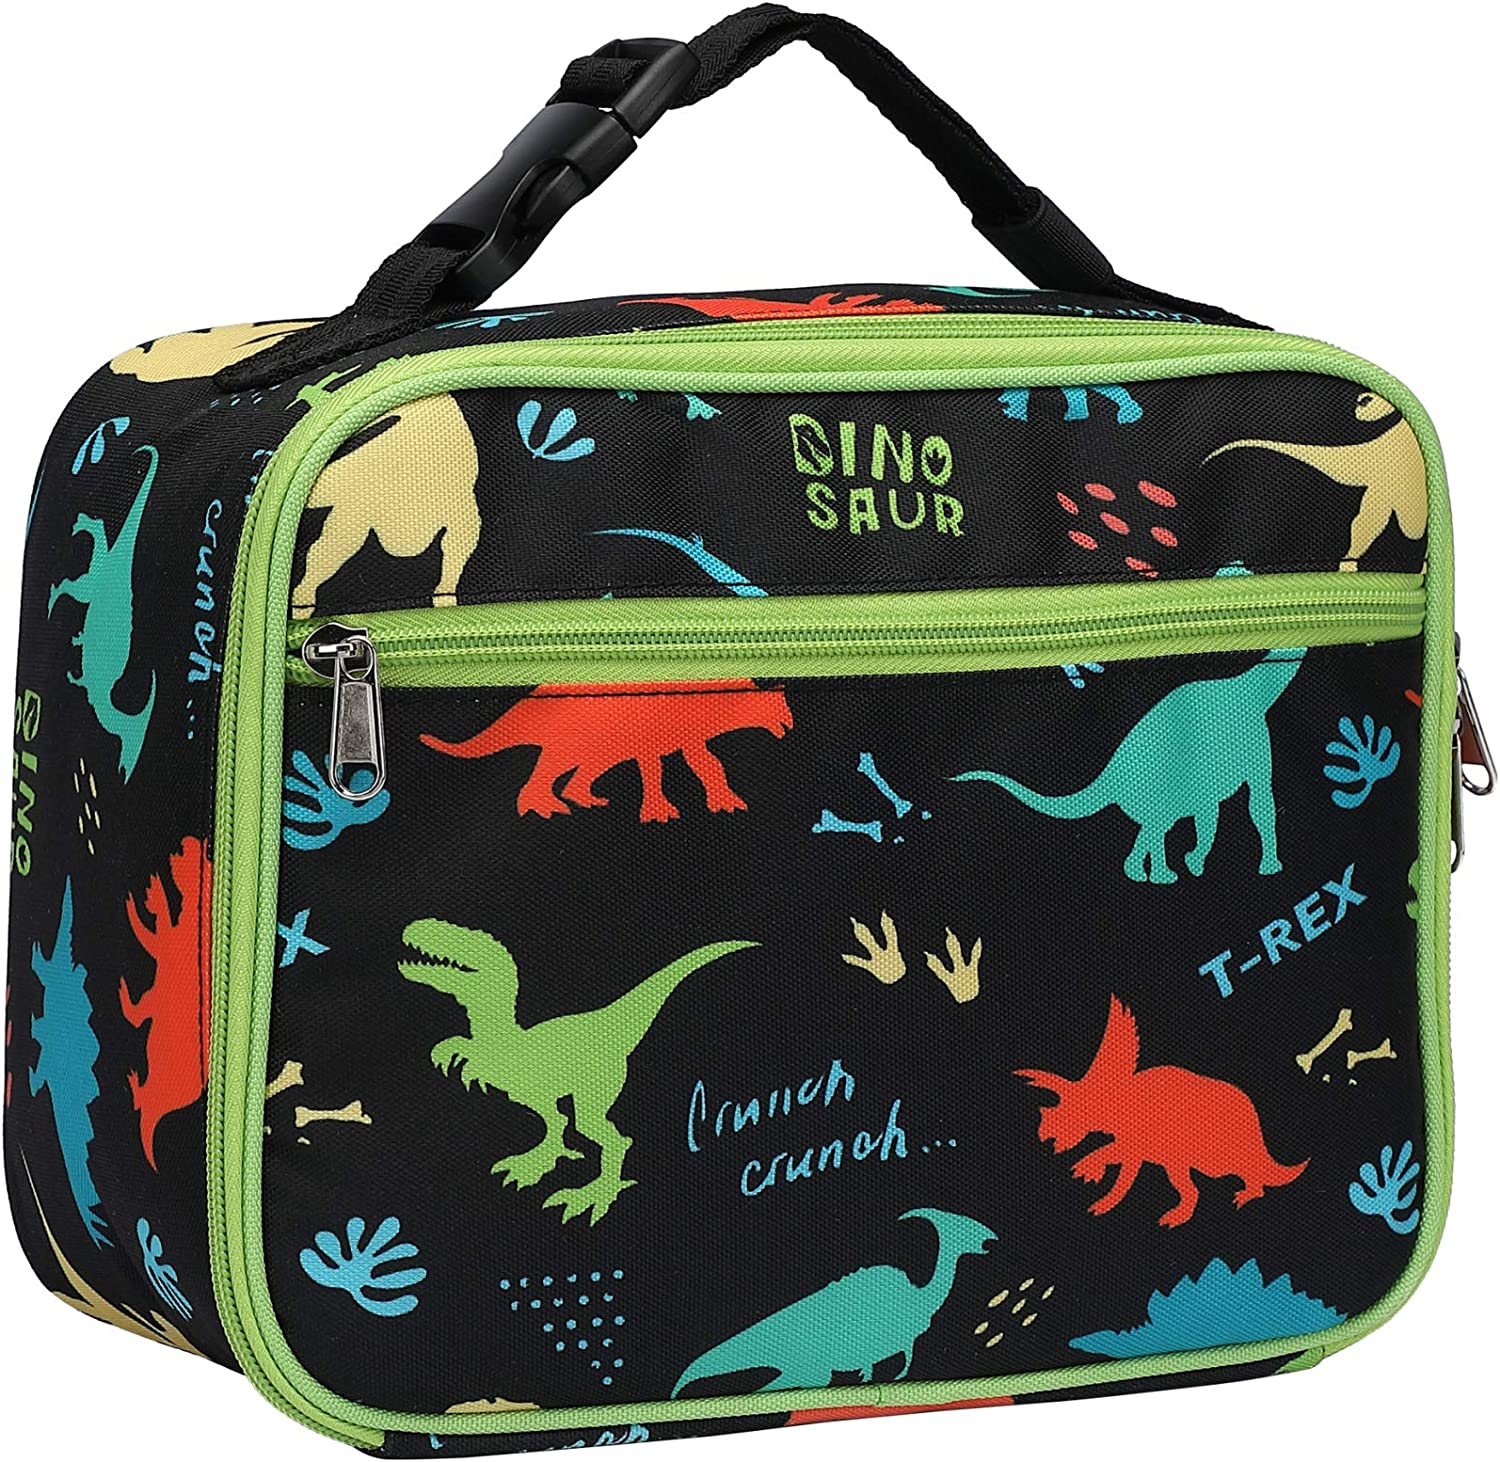 Lunch Box Bagseri Kids Max 81% Sale SALE% OFF OFF Insulated for R Boys Portable